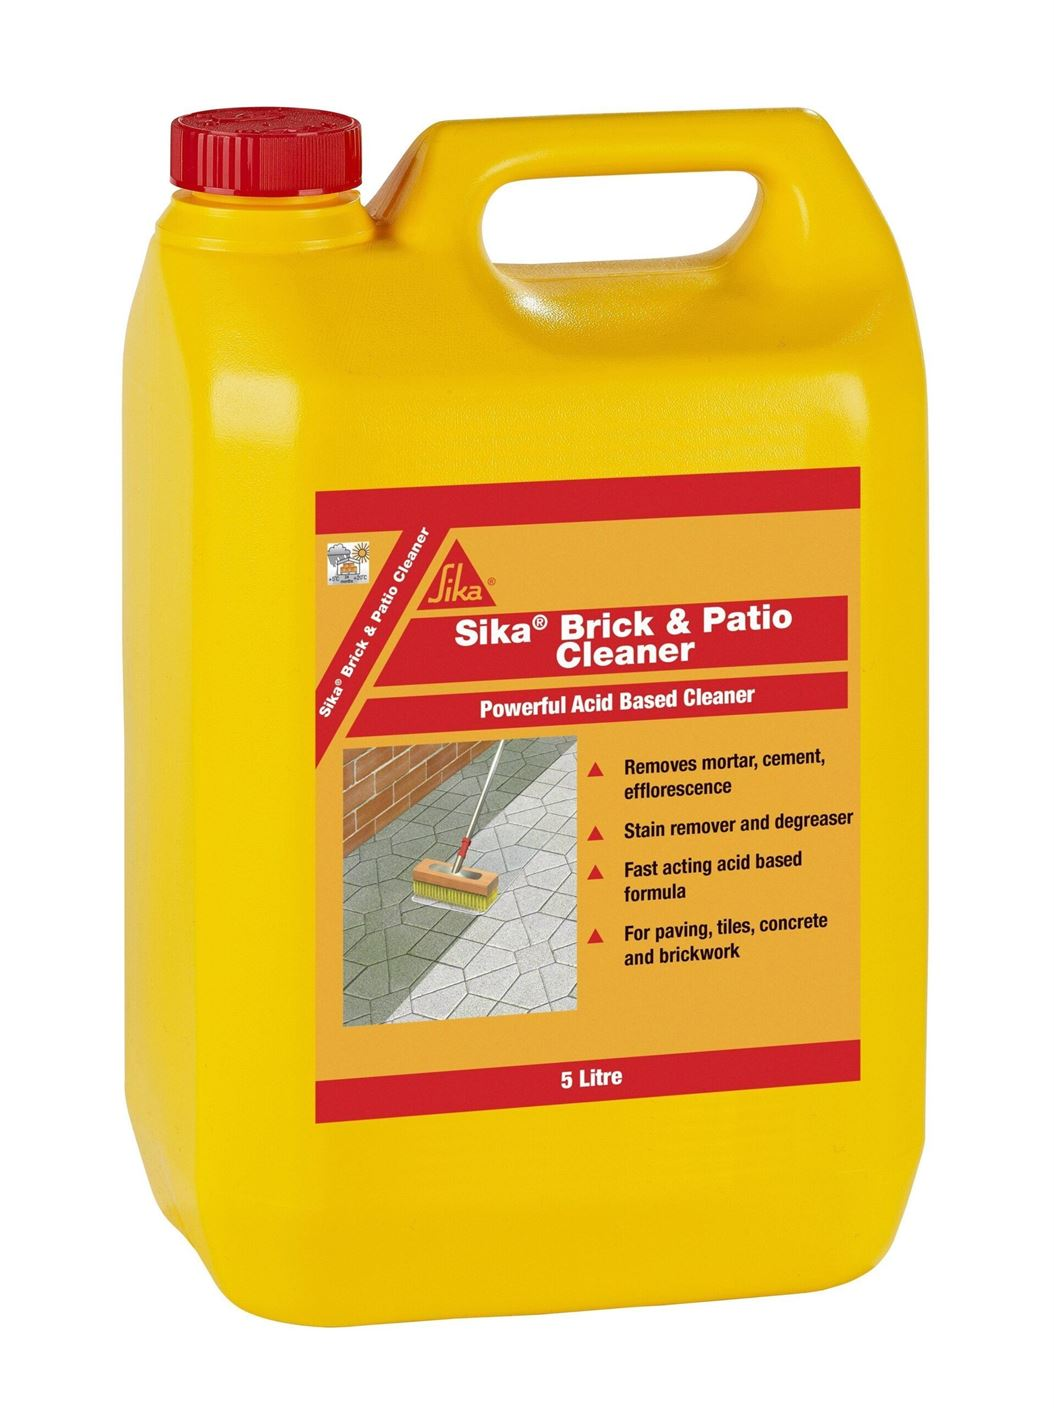 Sika Brick and Patio Cleaner 5L - Free Next Day Express Delivery!